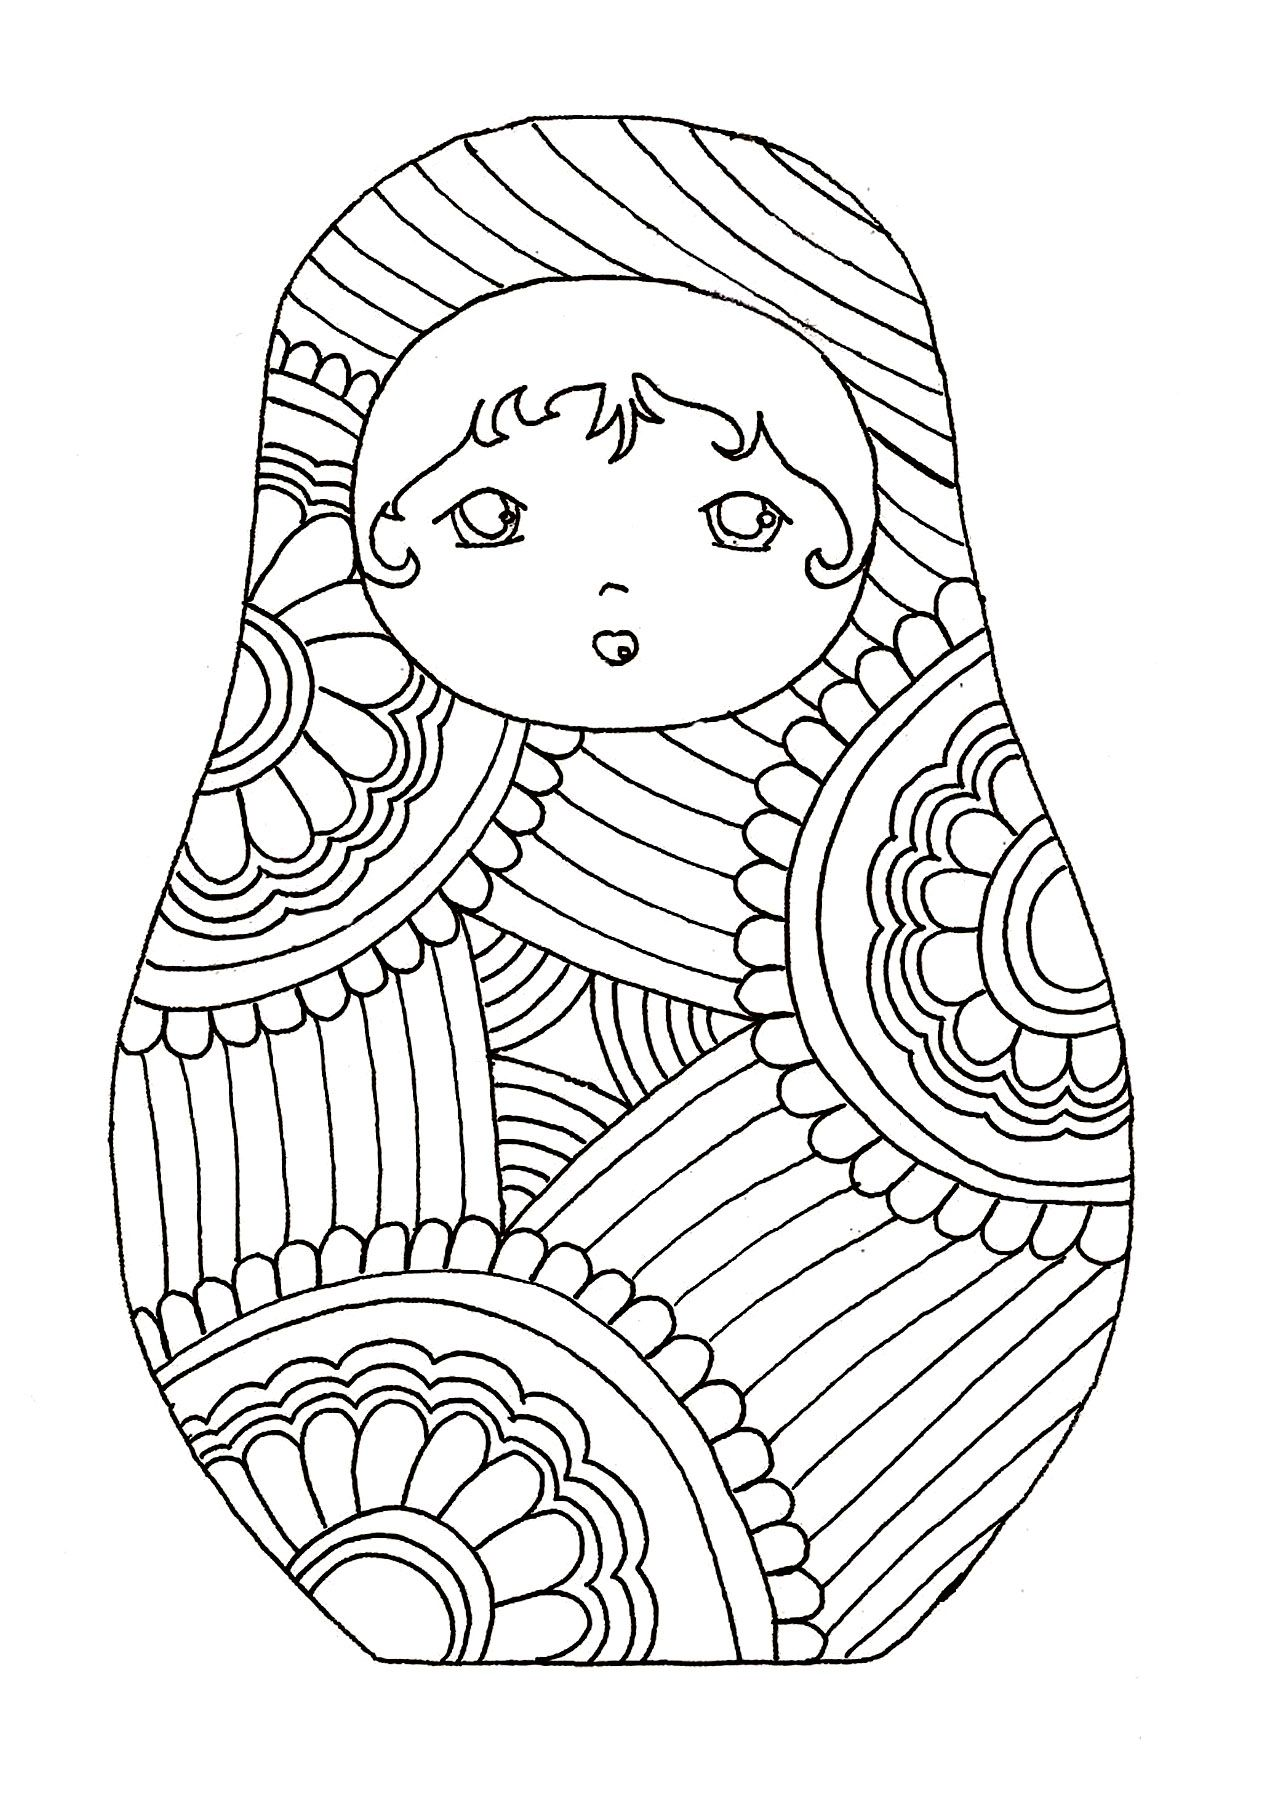 19 Of The Best Adult Colouring Pages Free Printables For Everyone